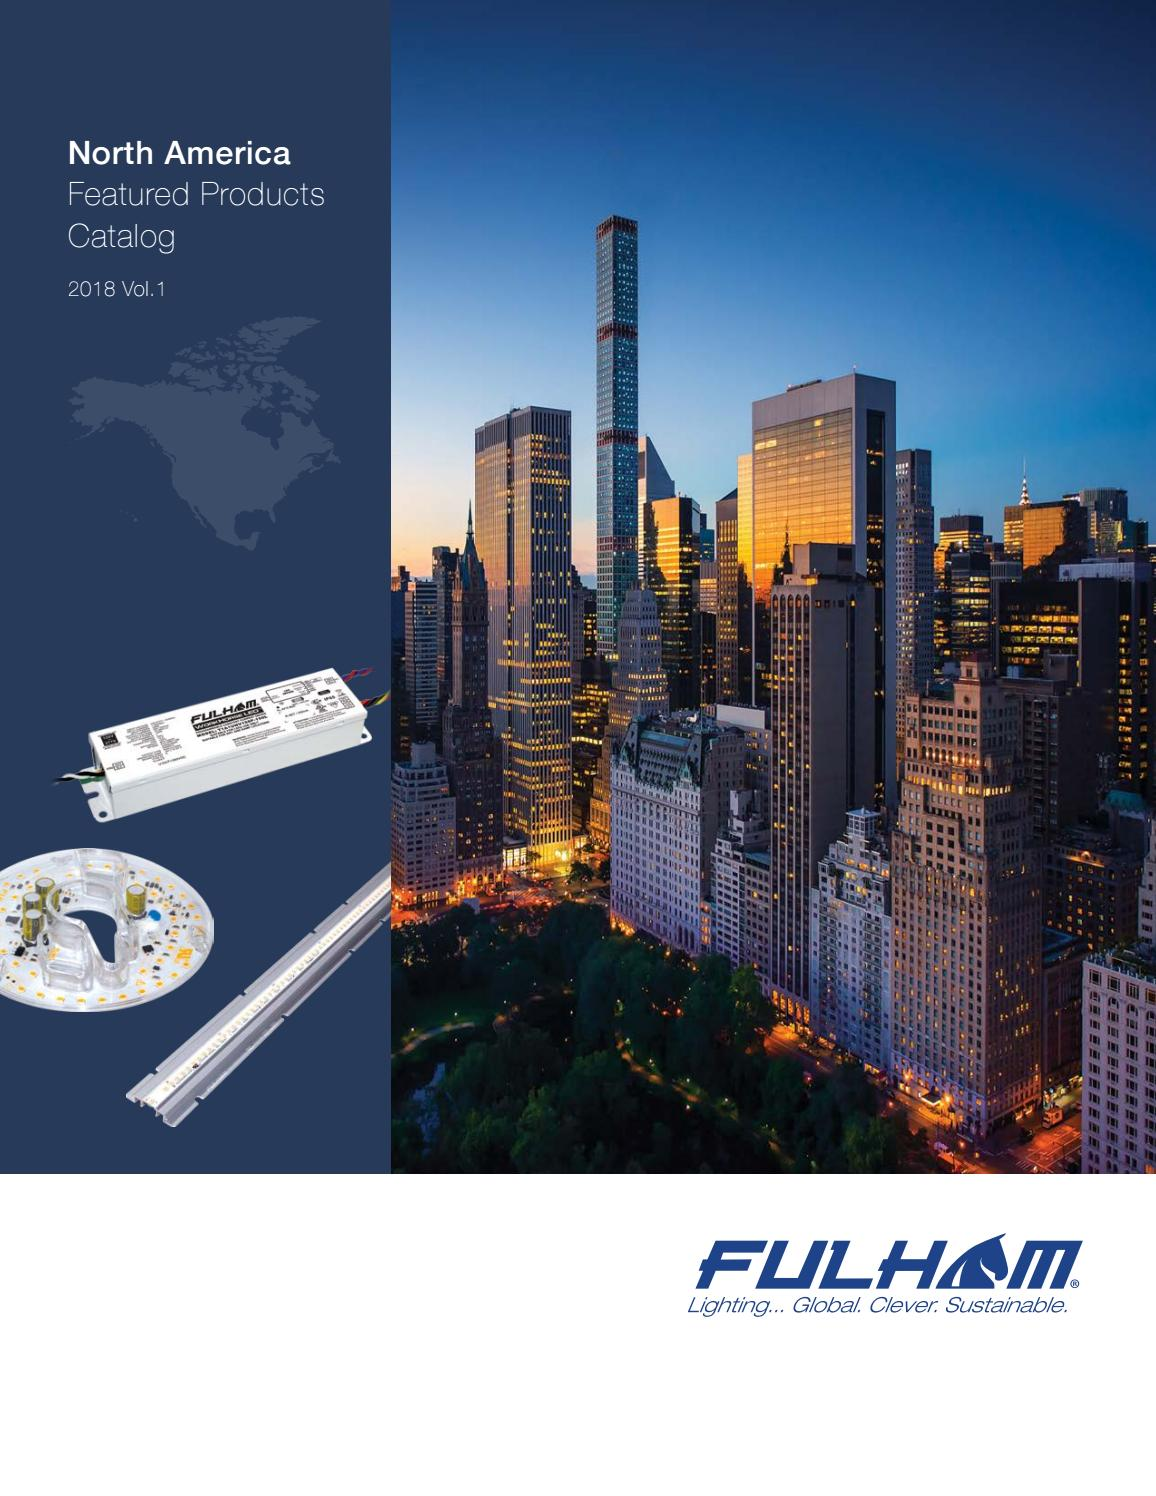 Fulham North America Featured Products Catalog By Co Inc Workhorse Electronic Ballast Wiring Diagram Issuu